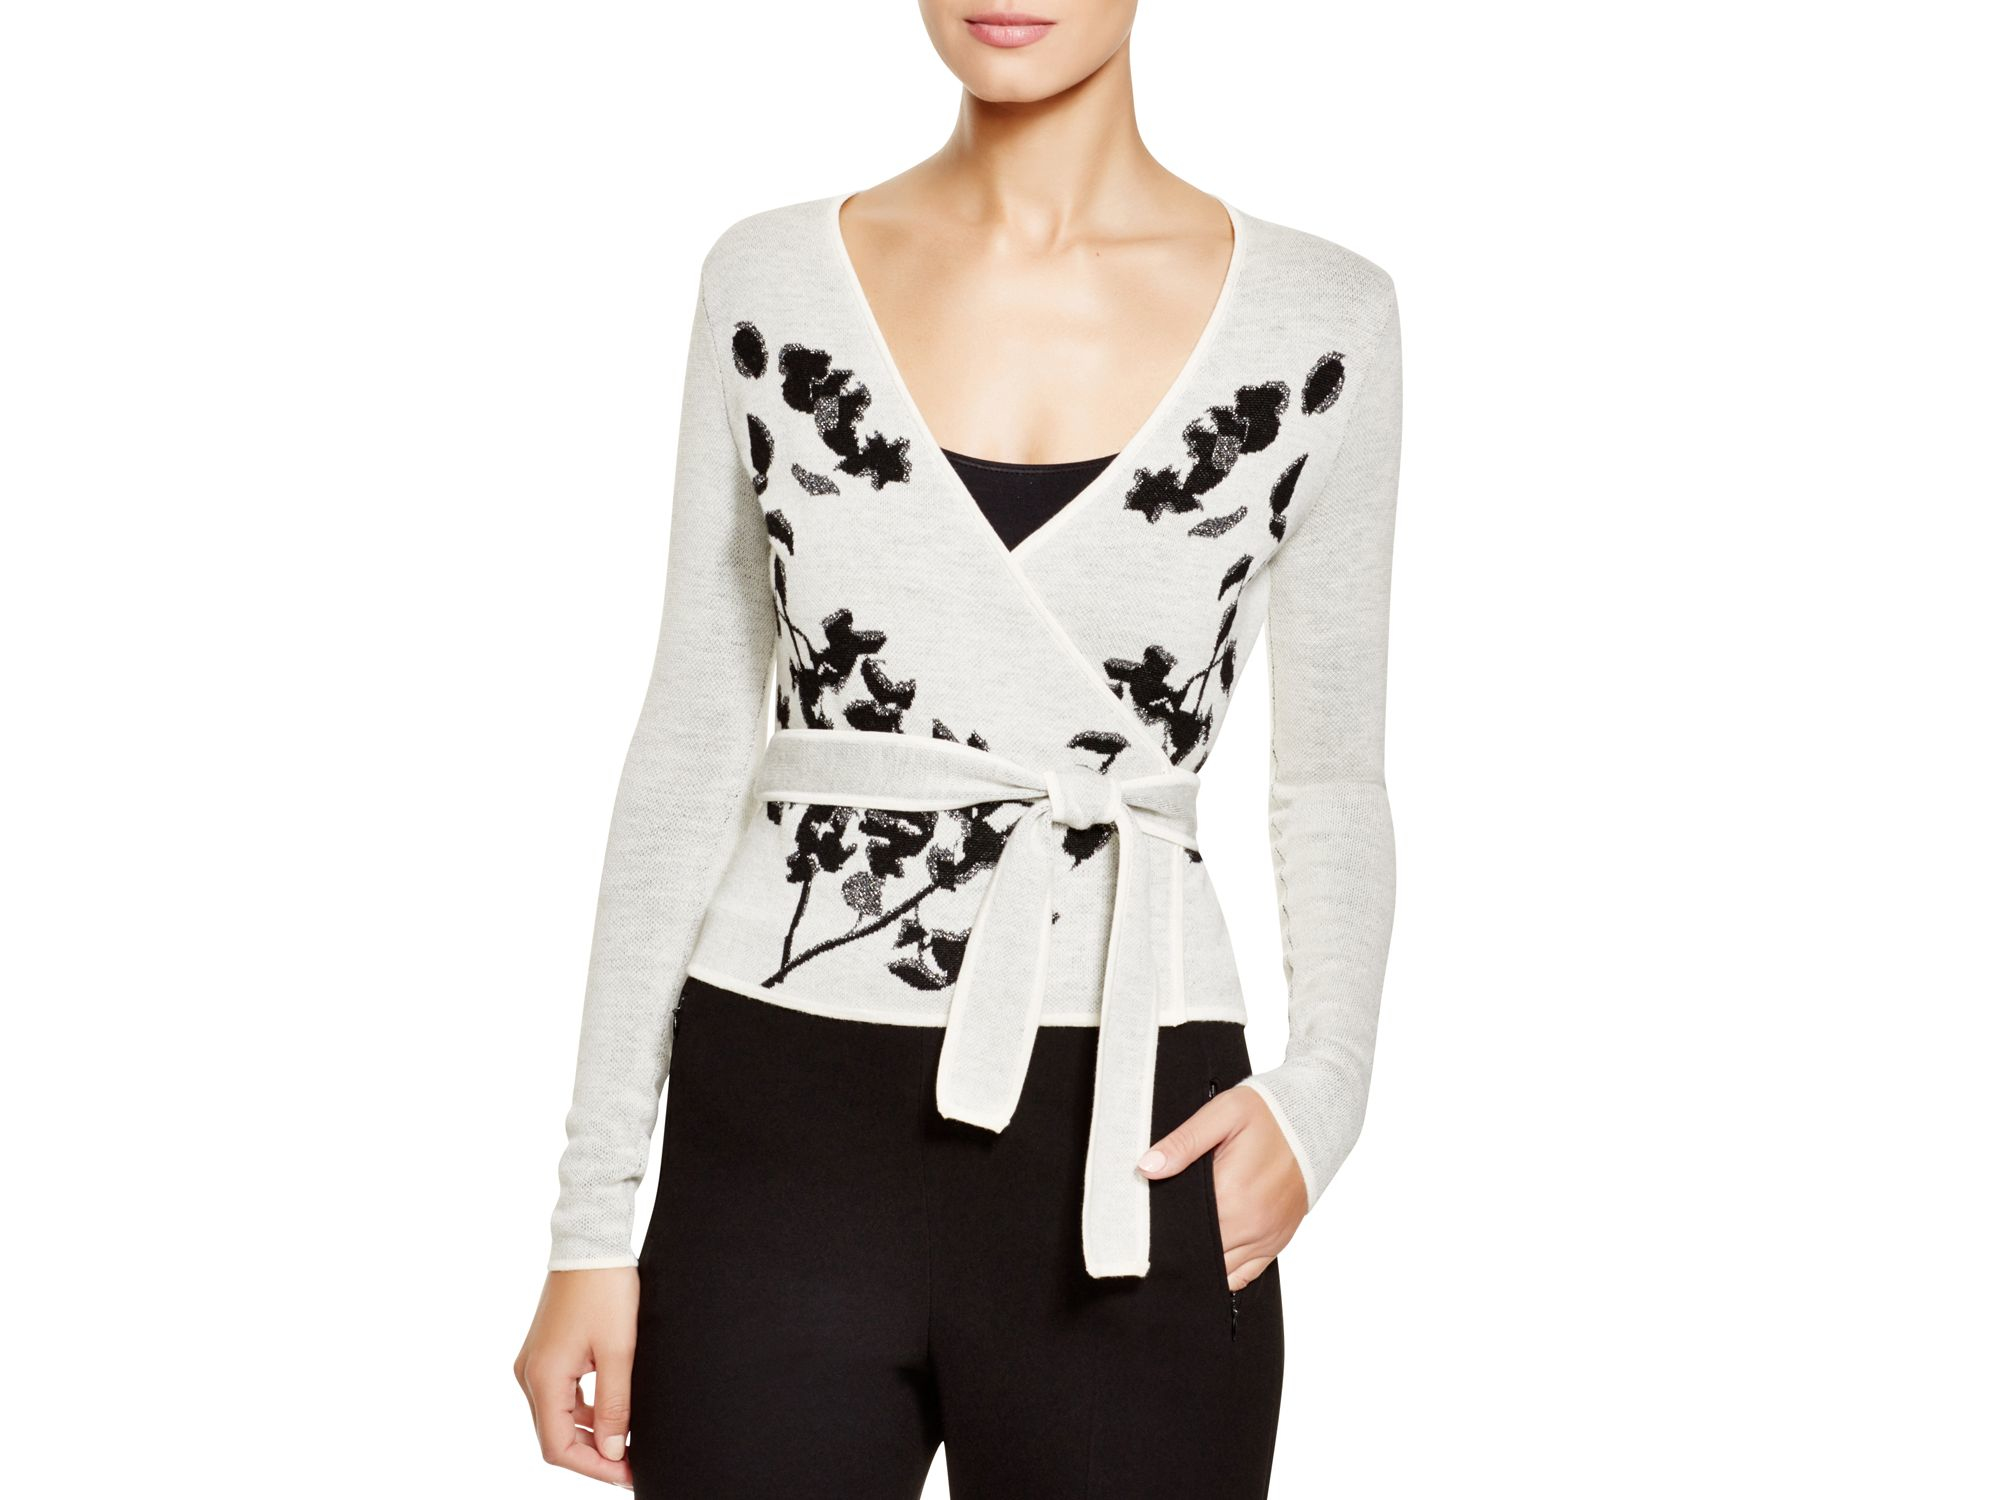 Offer Diane von Furstenberg Printed Knit Sweater Cheap Real Authentic 05ehrY